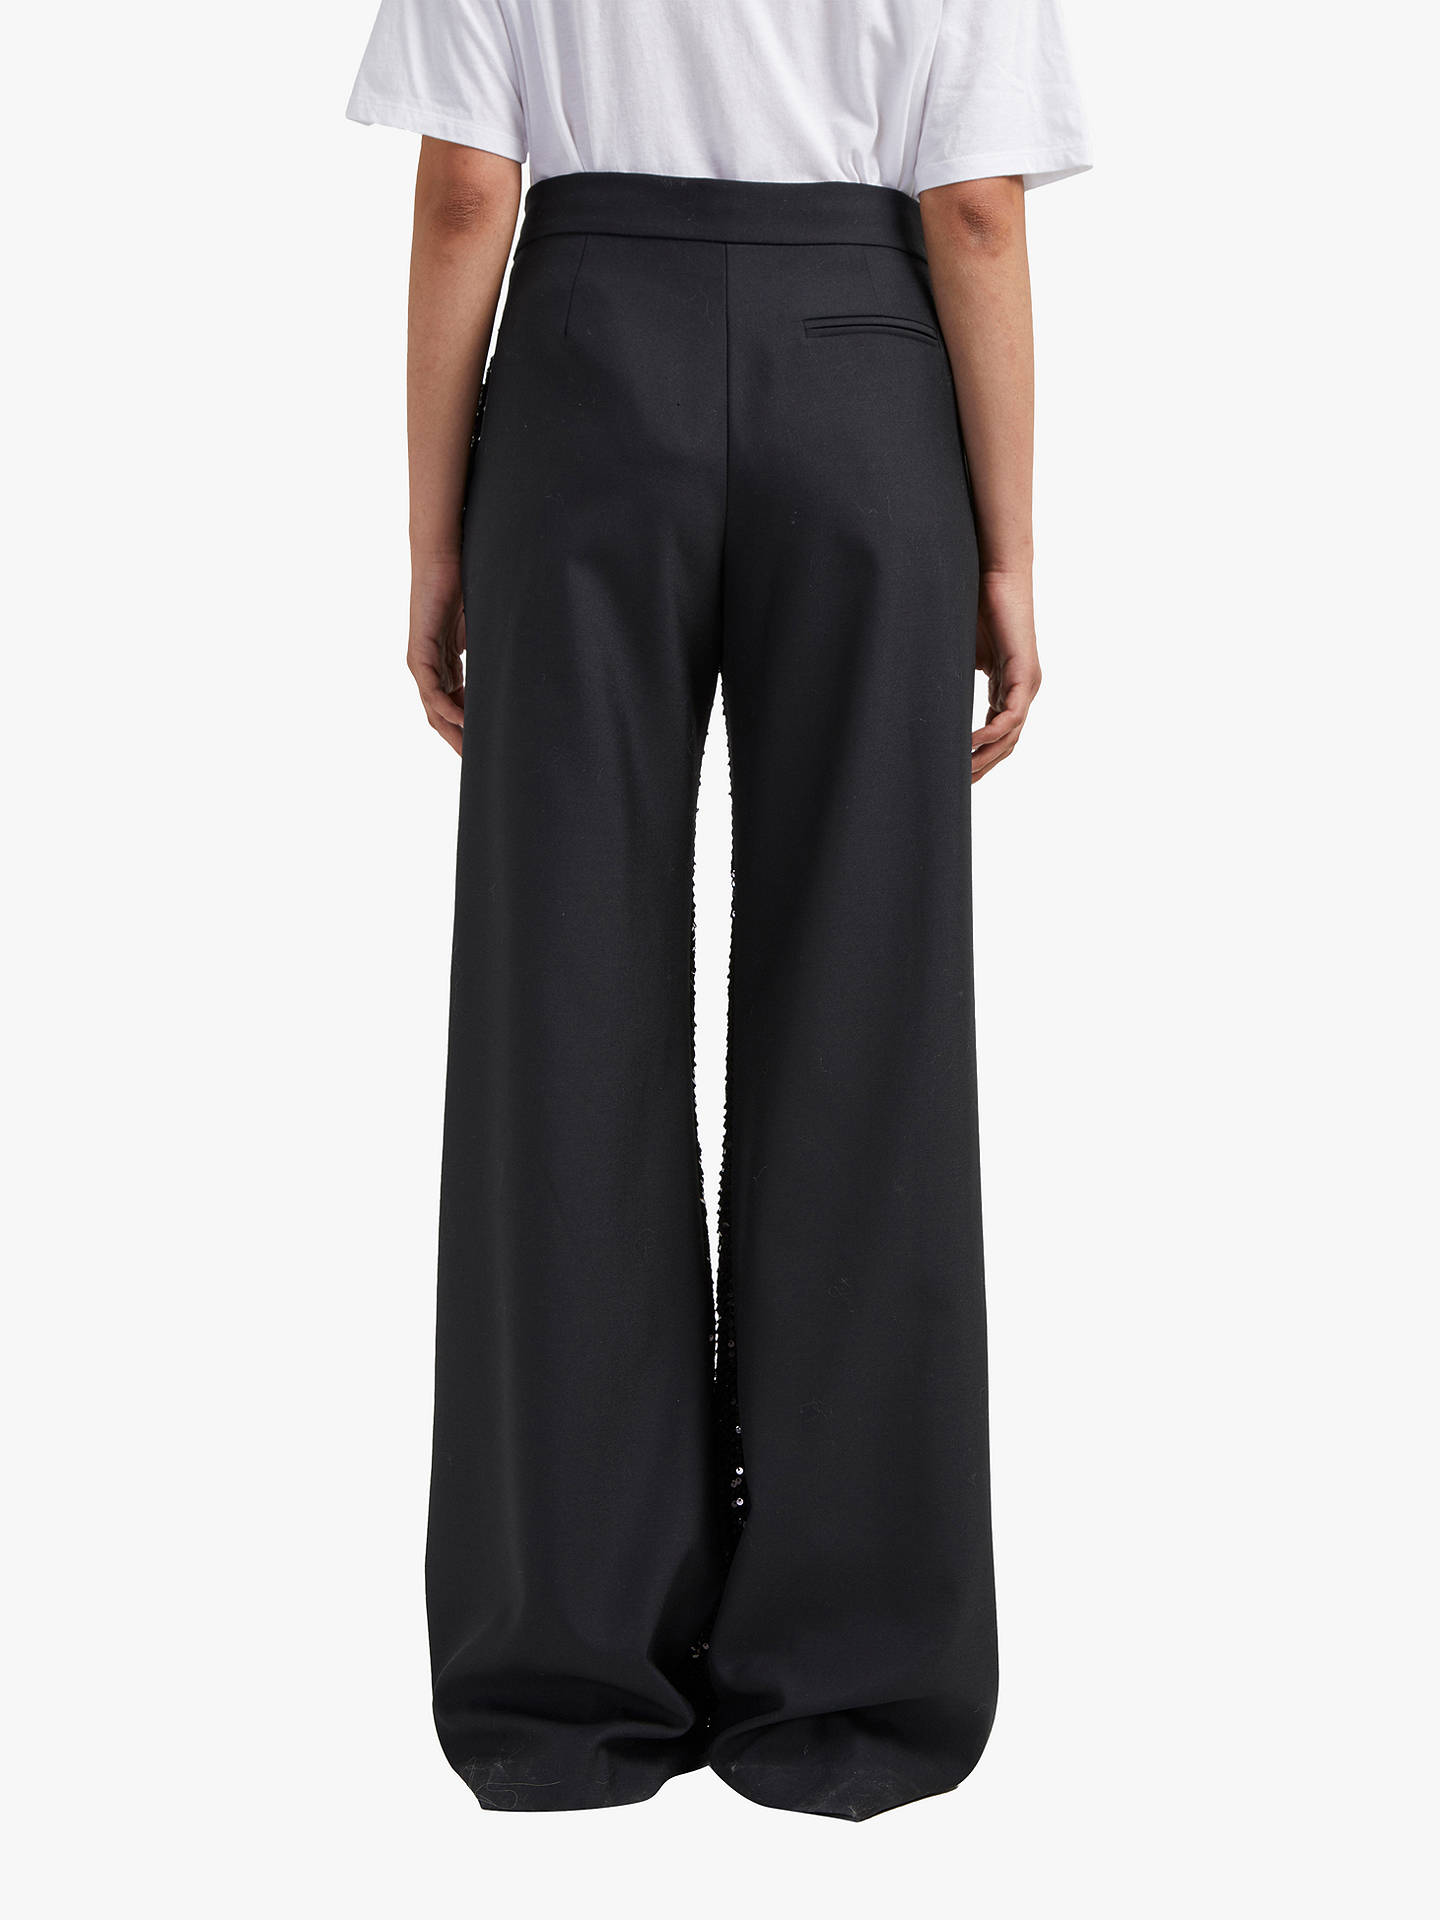 BuyFrench Connection Alodia Sequin Wide Leg Trousers, Black, 14 Online at johnlewis.com